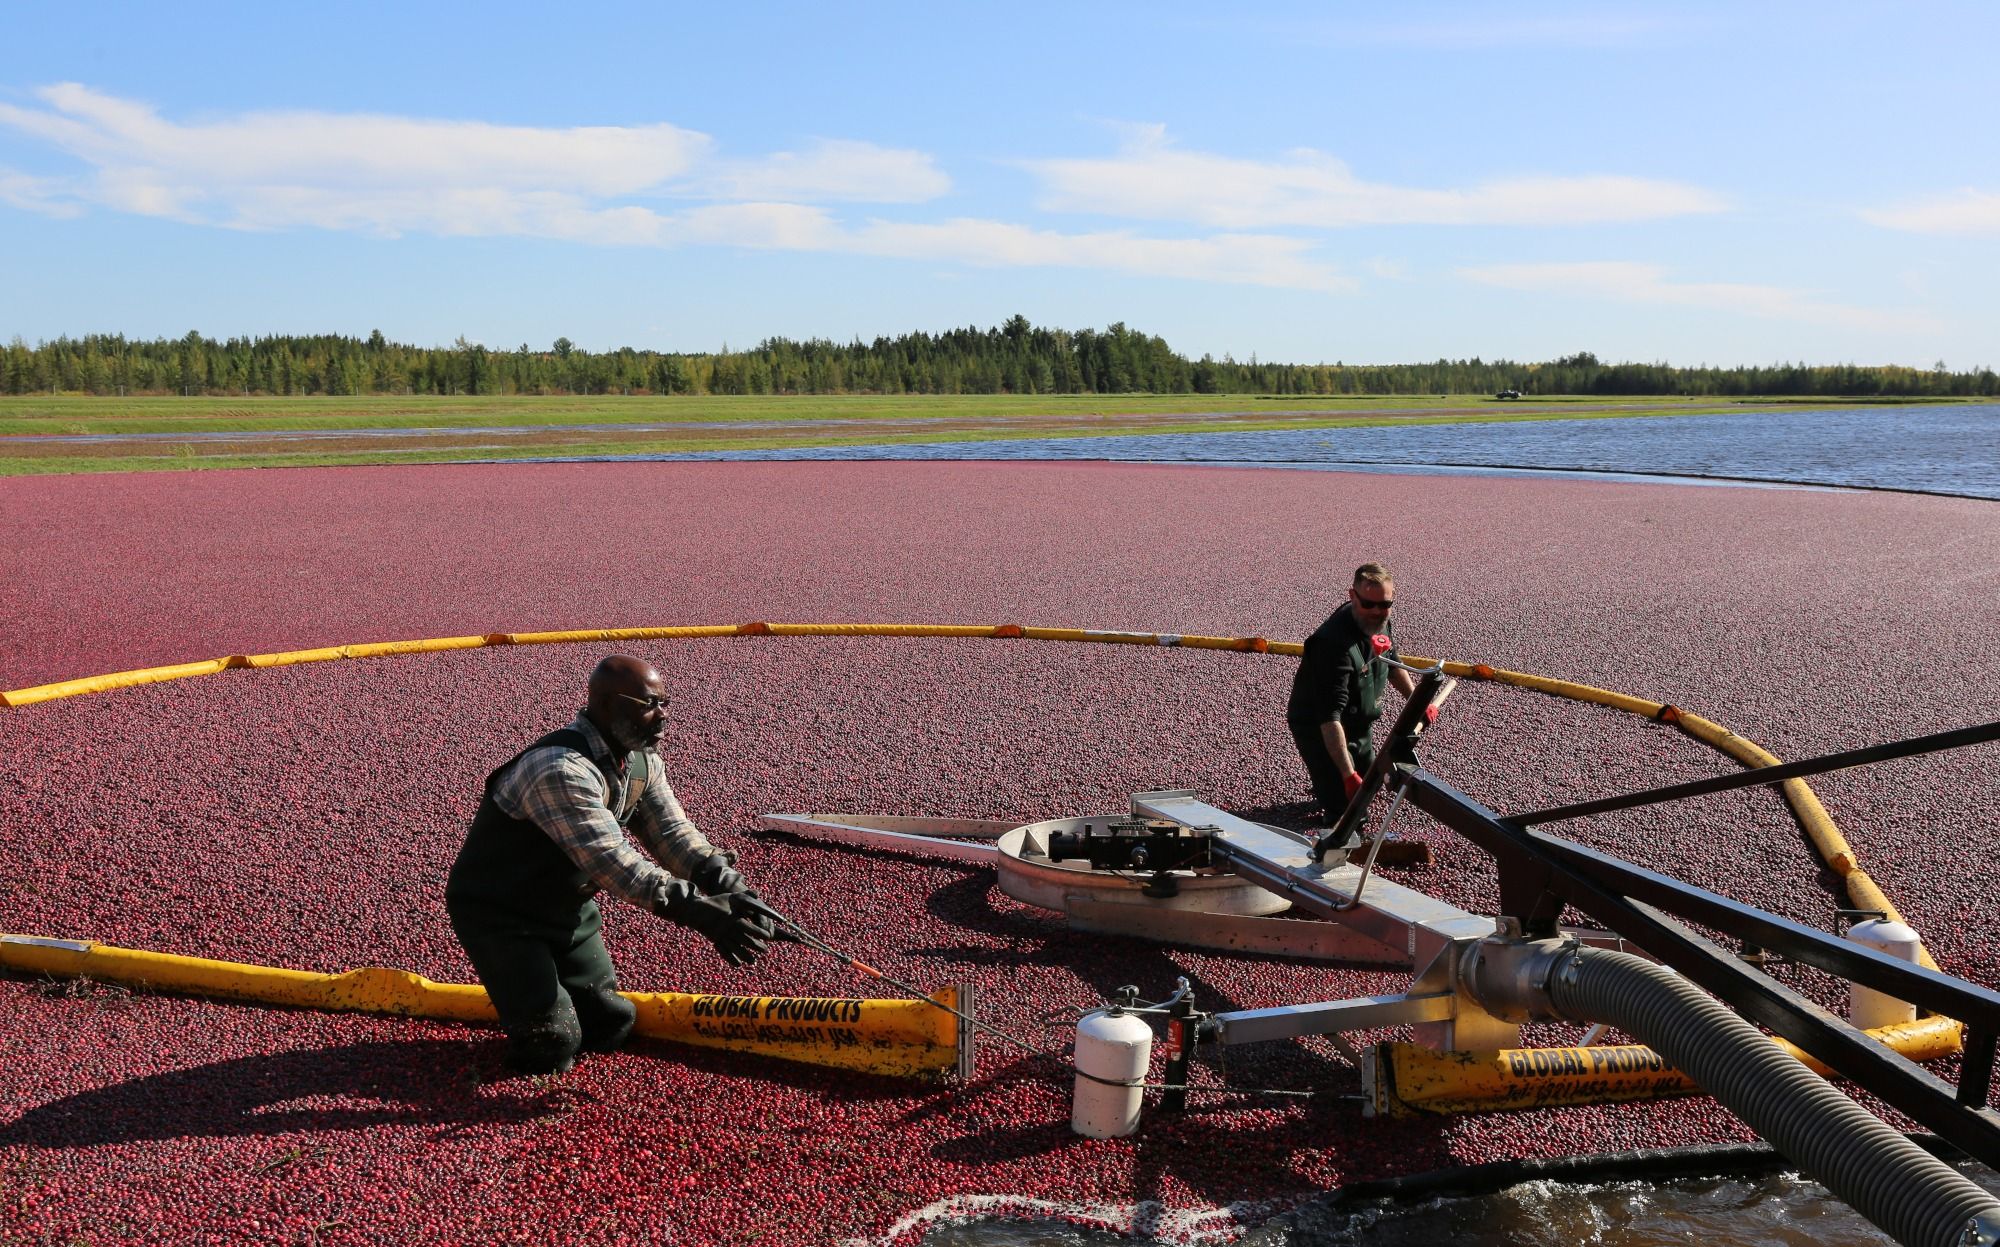 Cranberry Harvest Tour At Lake Nokomis Cranberries Vilas County Wisconsin